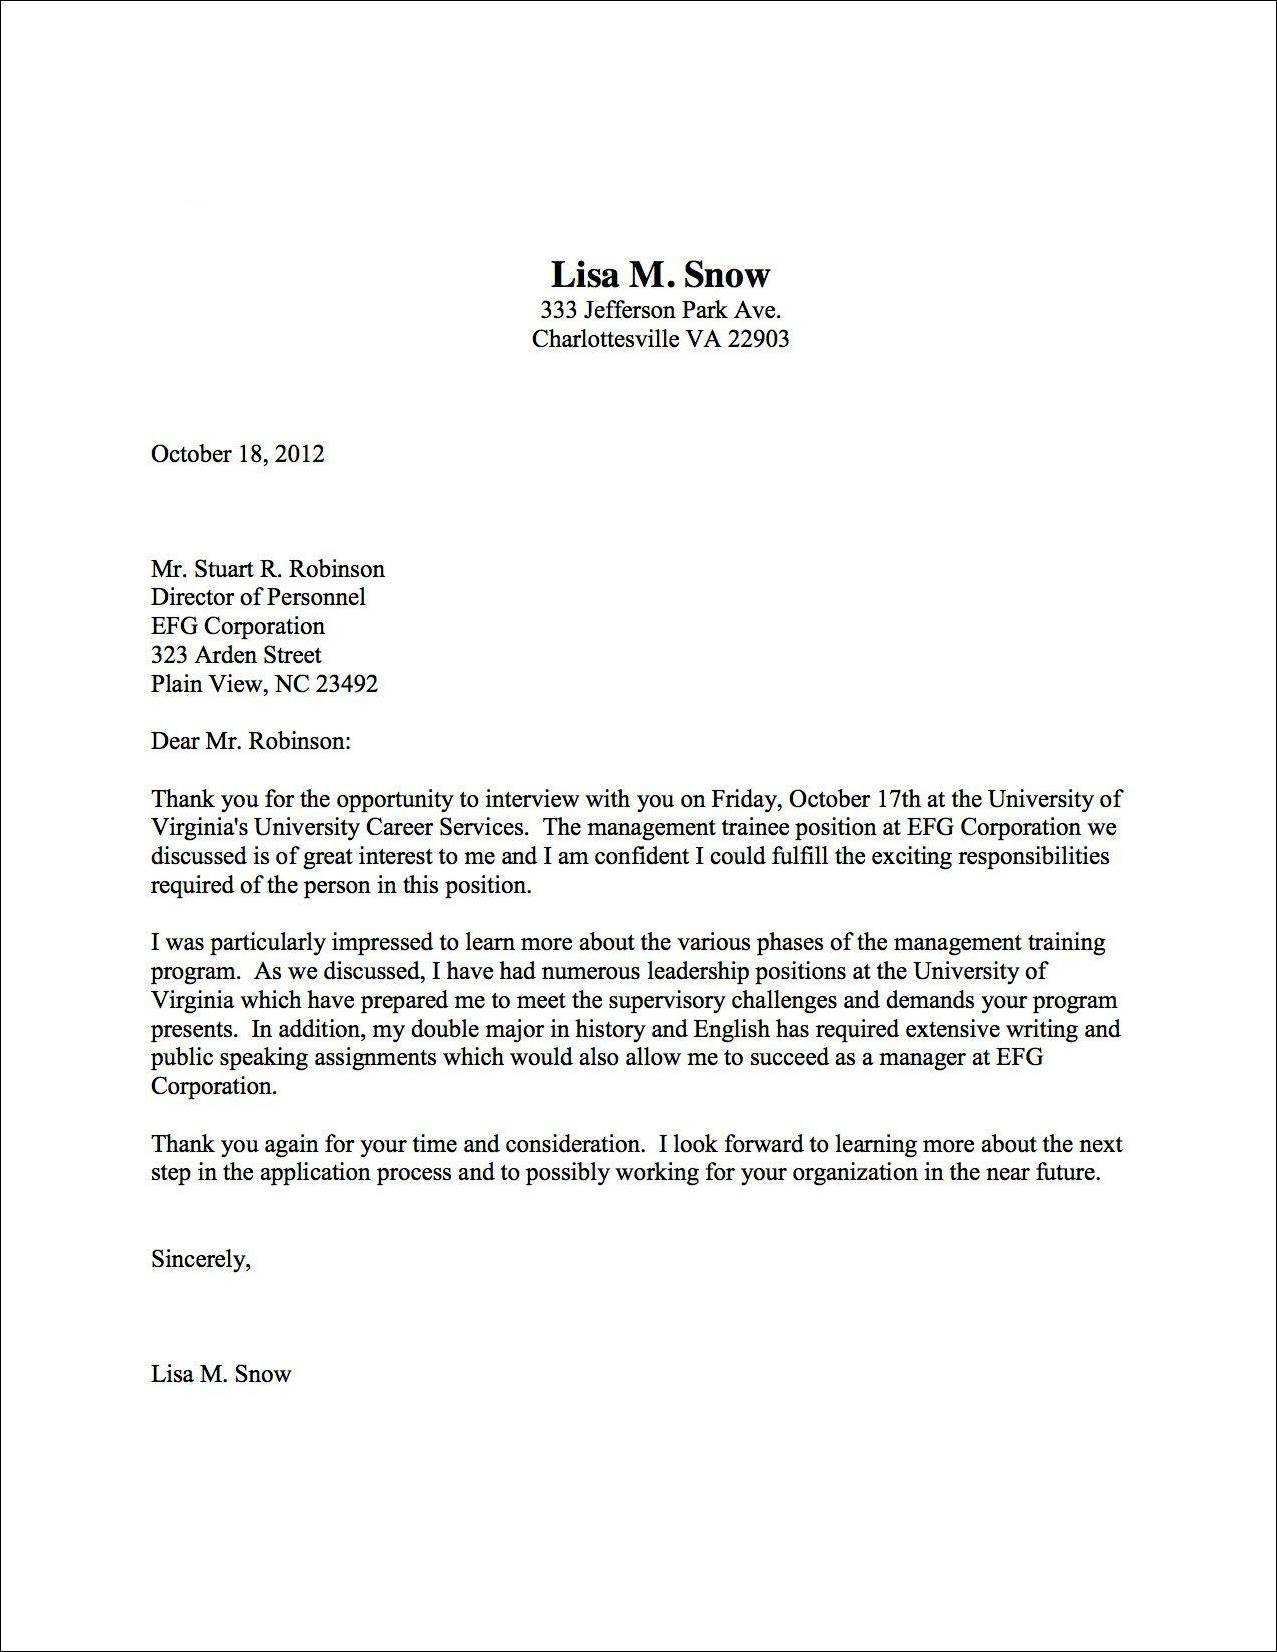 example of a thank you letter onwebioinnovateco